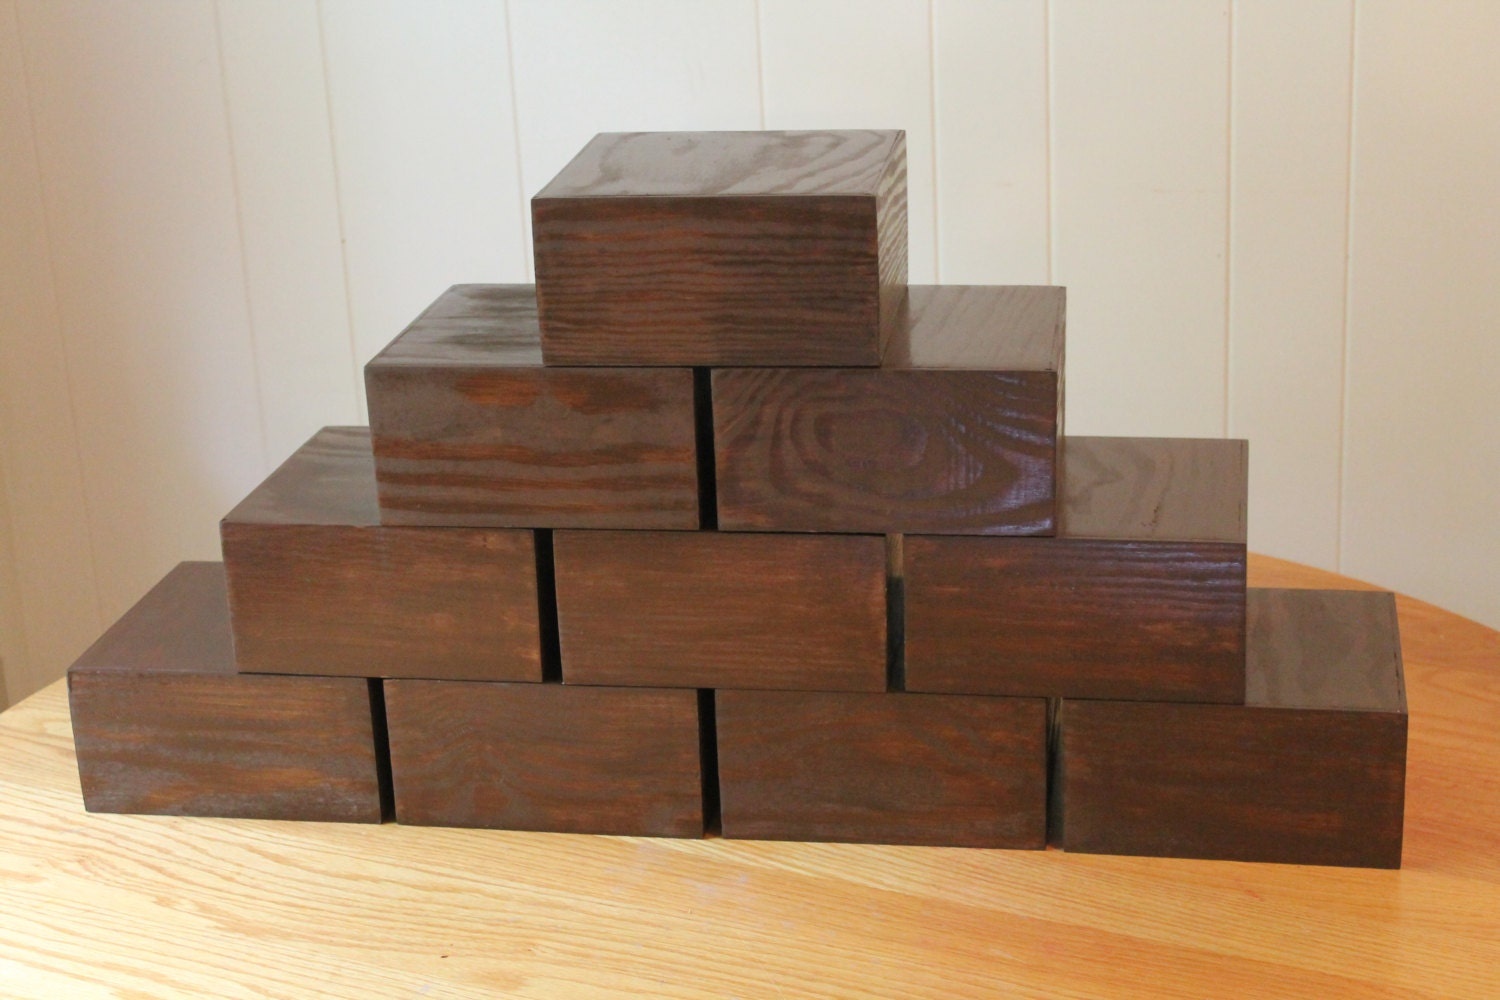 Wooden stand plinth table centerpiece riser box display